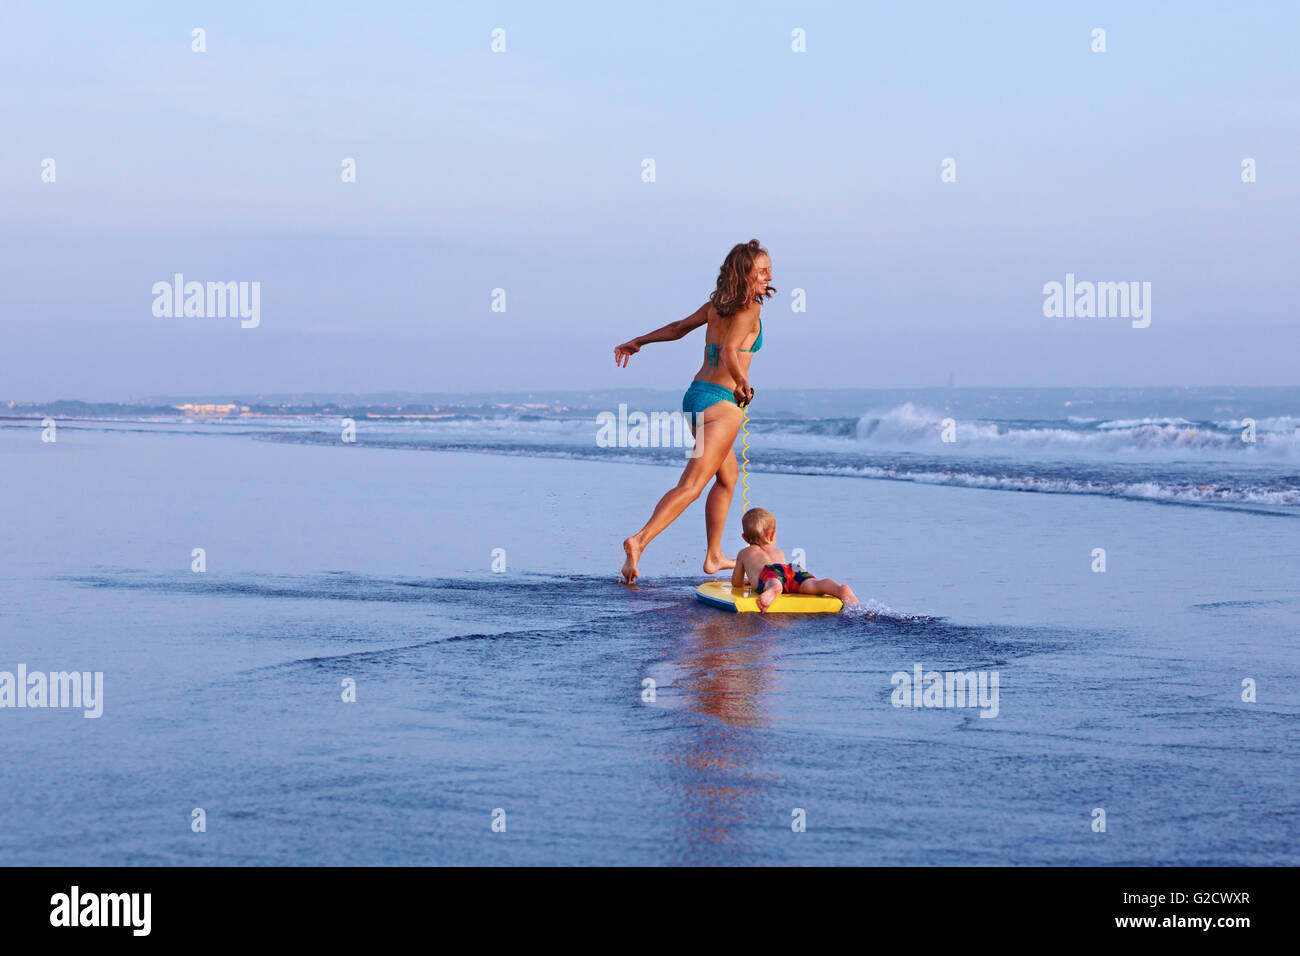 Happy family having fun - mother with baby son on surfing board run by water pool along sea surf of sunset beach. - Stock Image